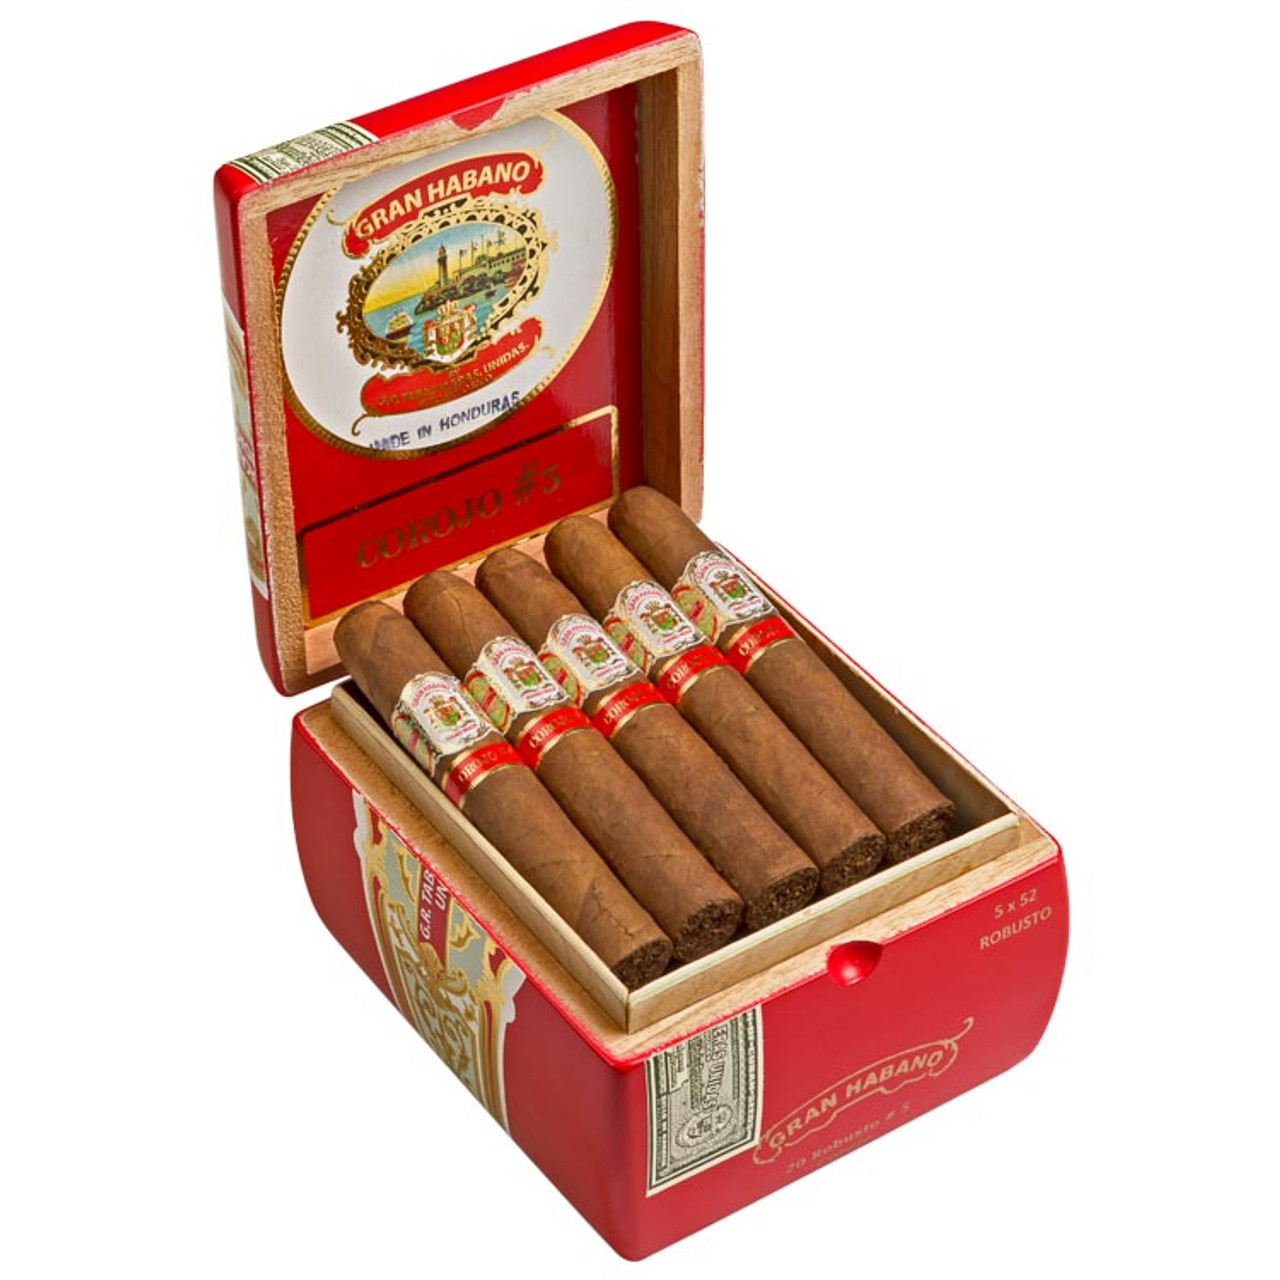 Gran Habano #5 Corojo Robusto Cigars - 5 x 52 (Box of 20)